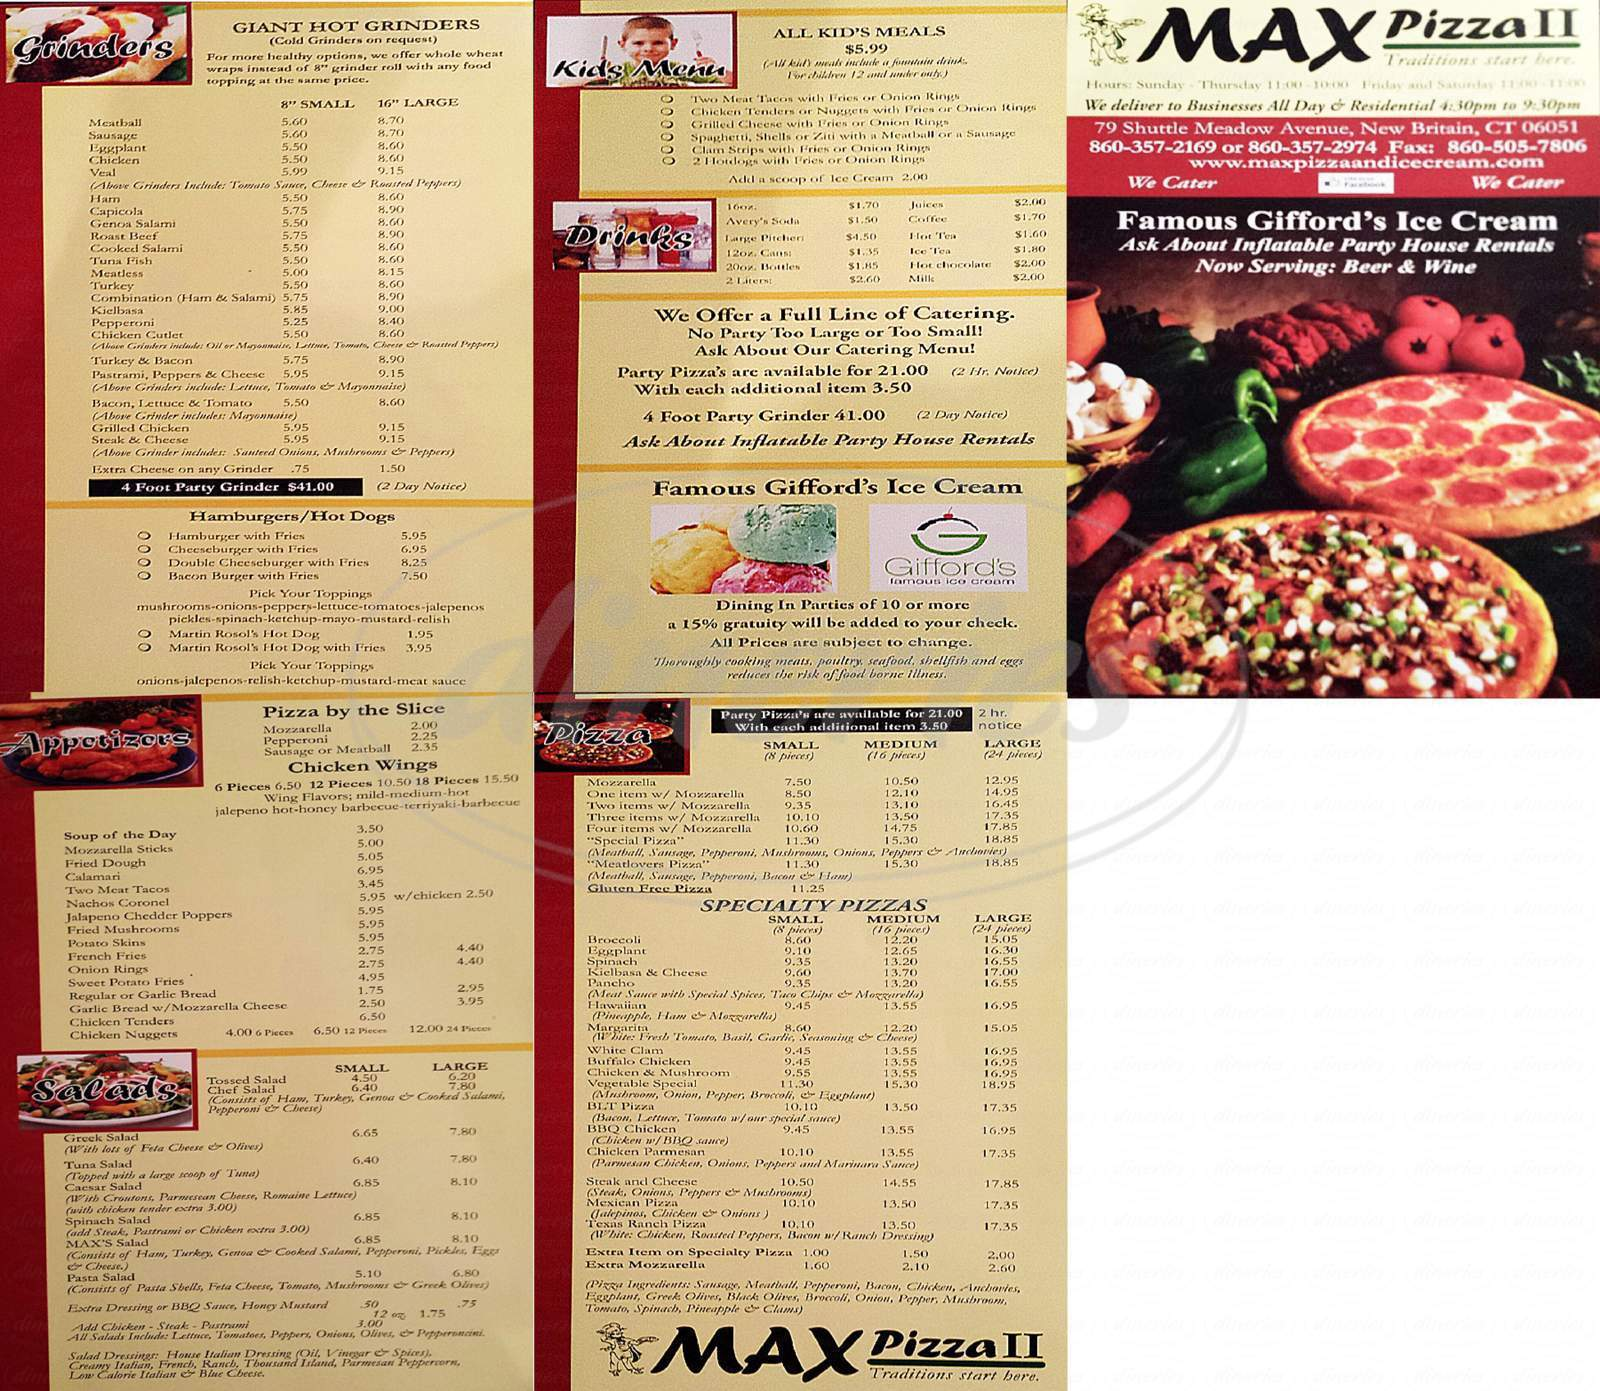 menu for Max Pizza II